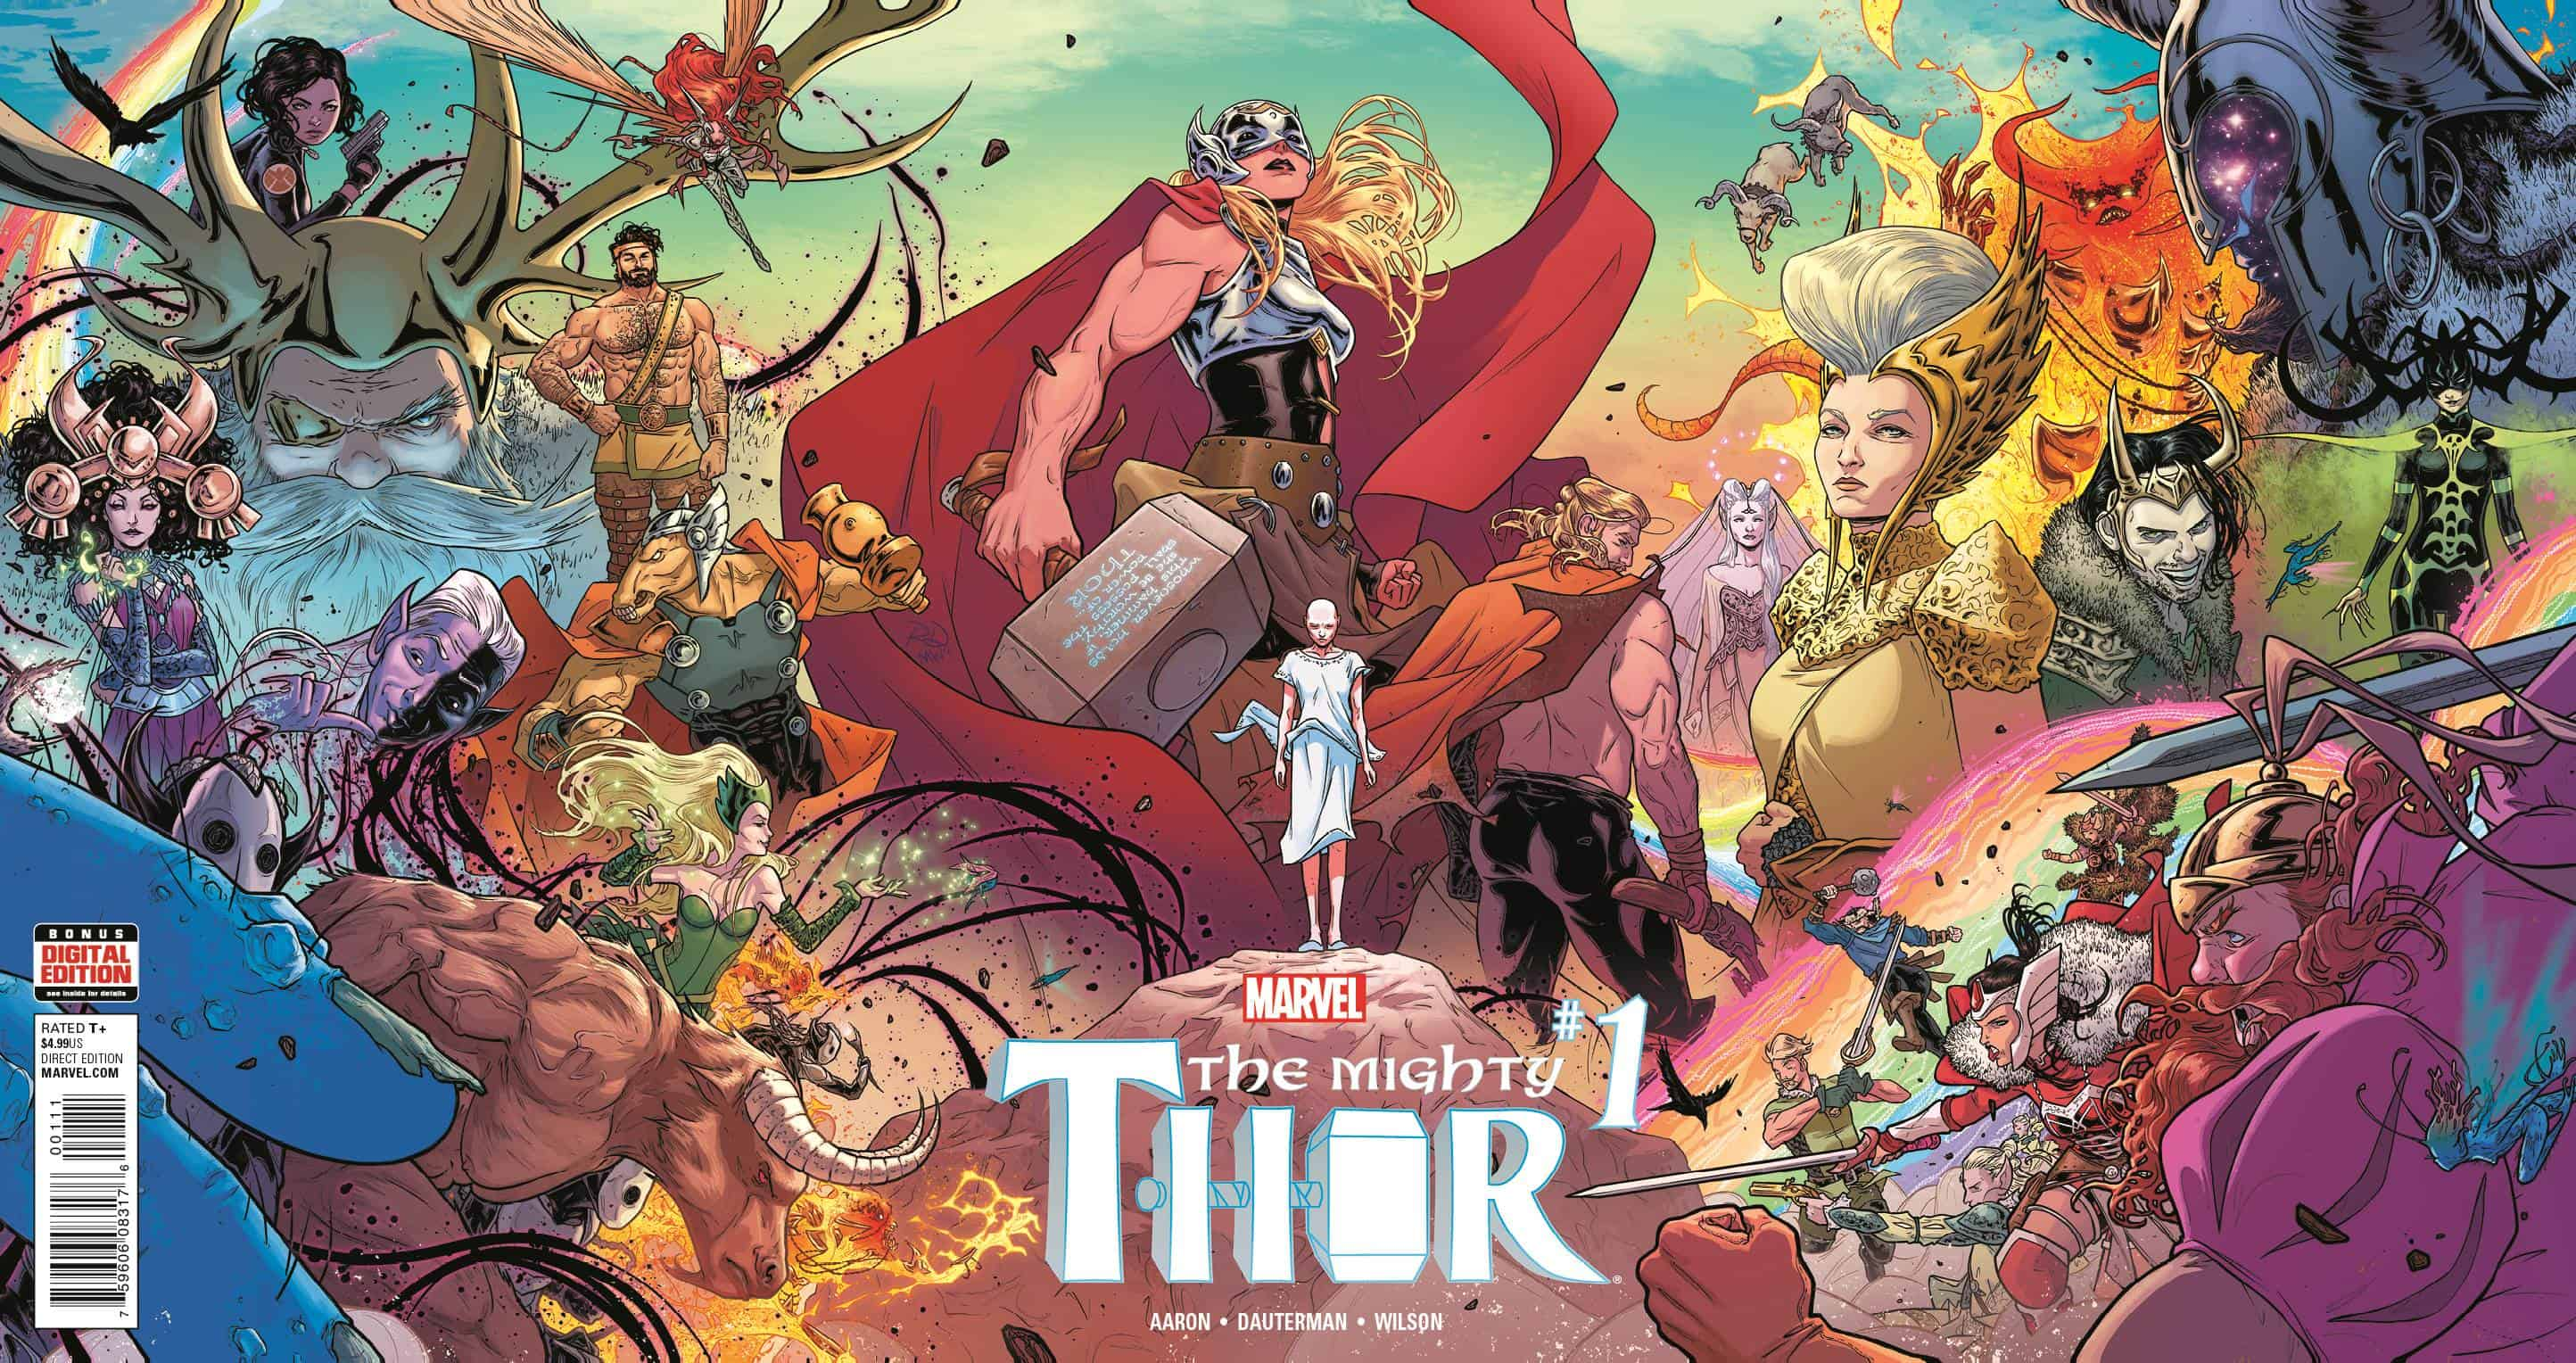 4905396-0+the_mighty_thor_1_wraparound_gatefold_cover